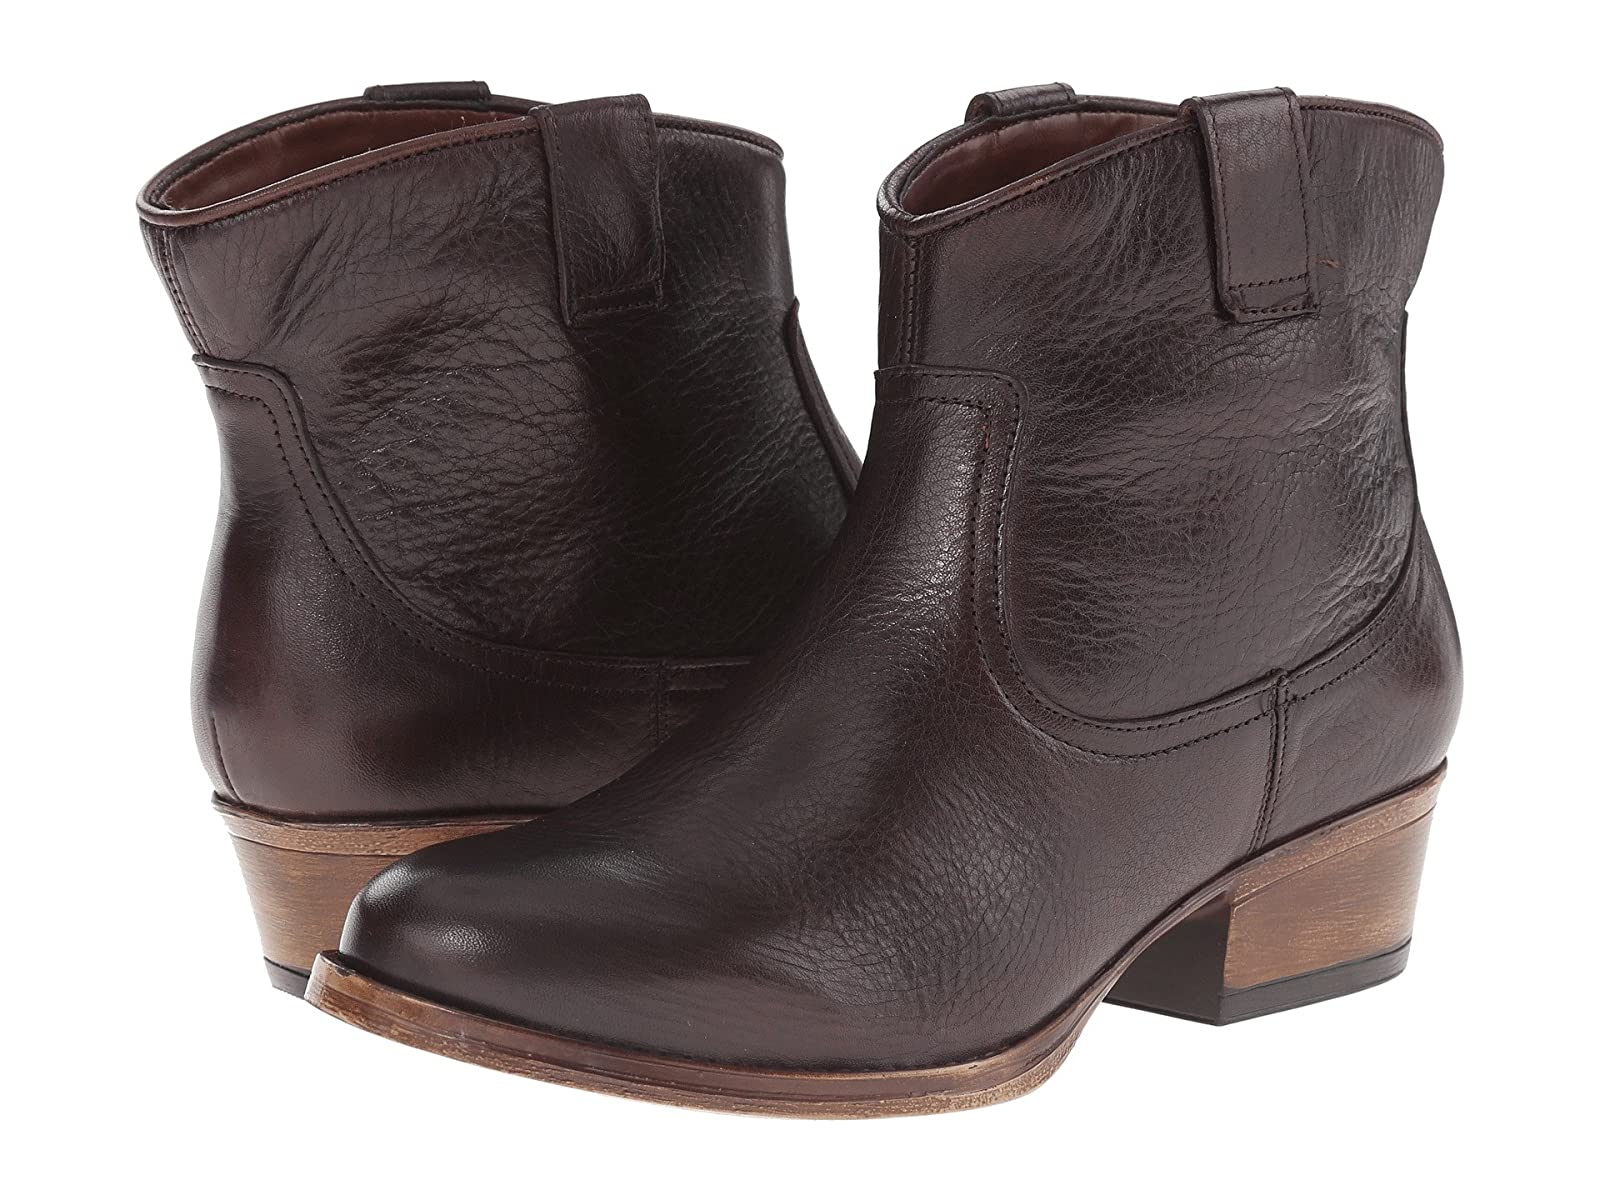 Kenneth Cole Reaction Hot StepCheap and distinctive eye-catching shoes